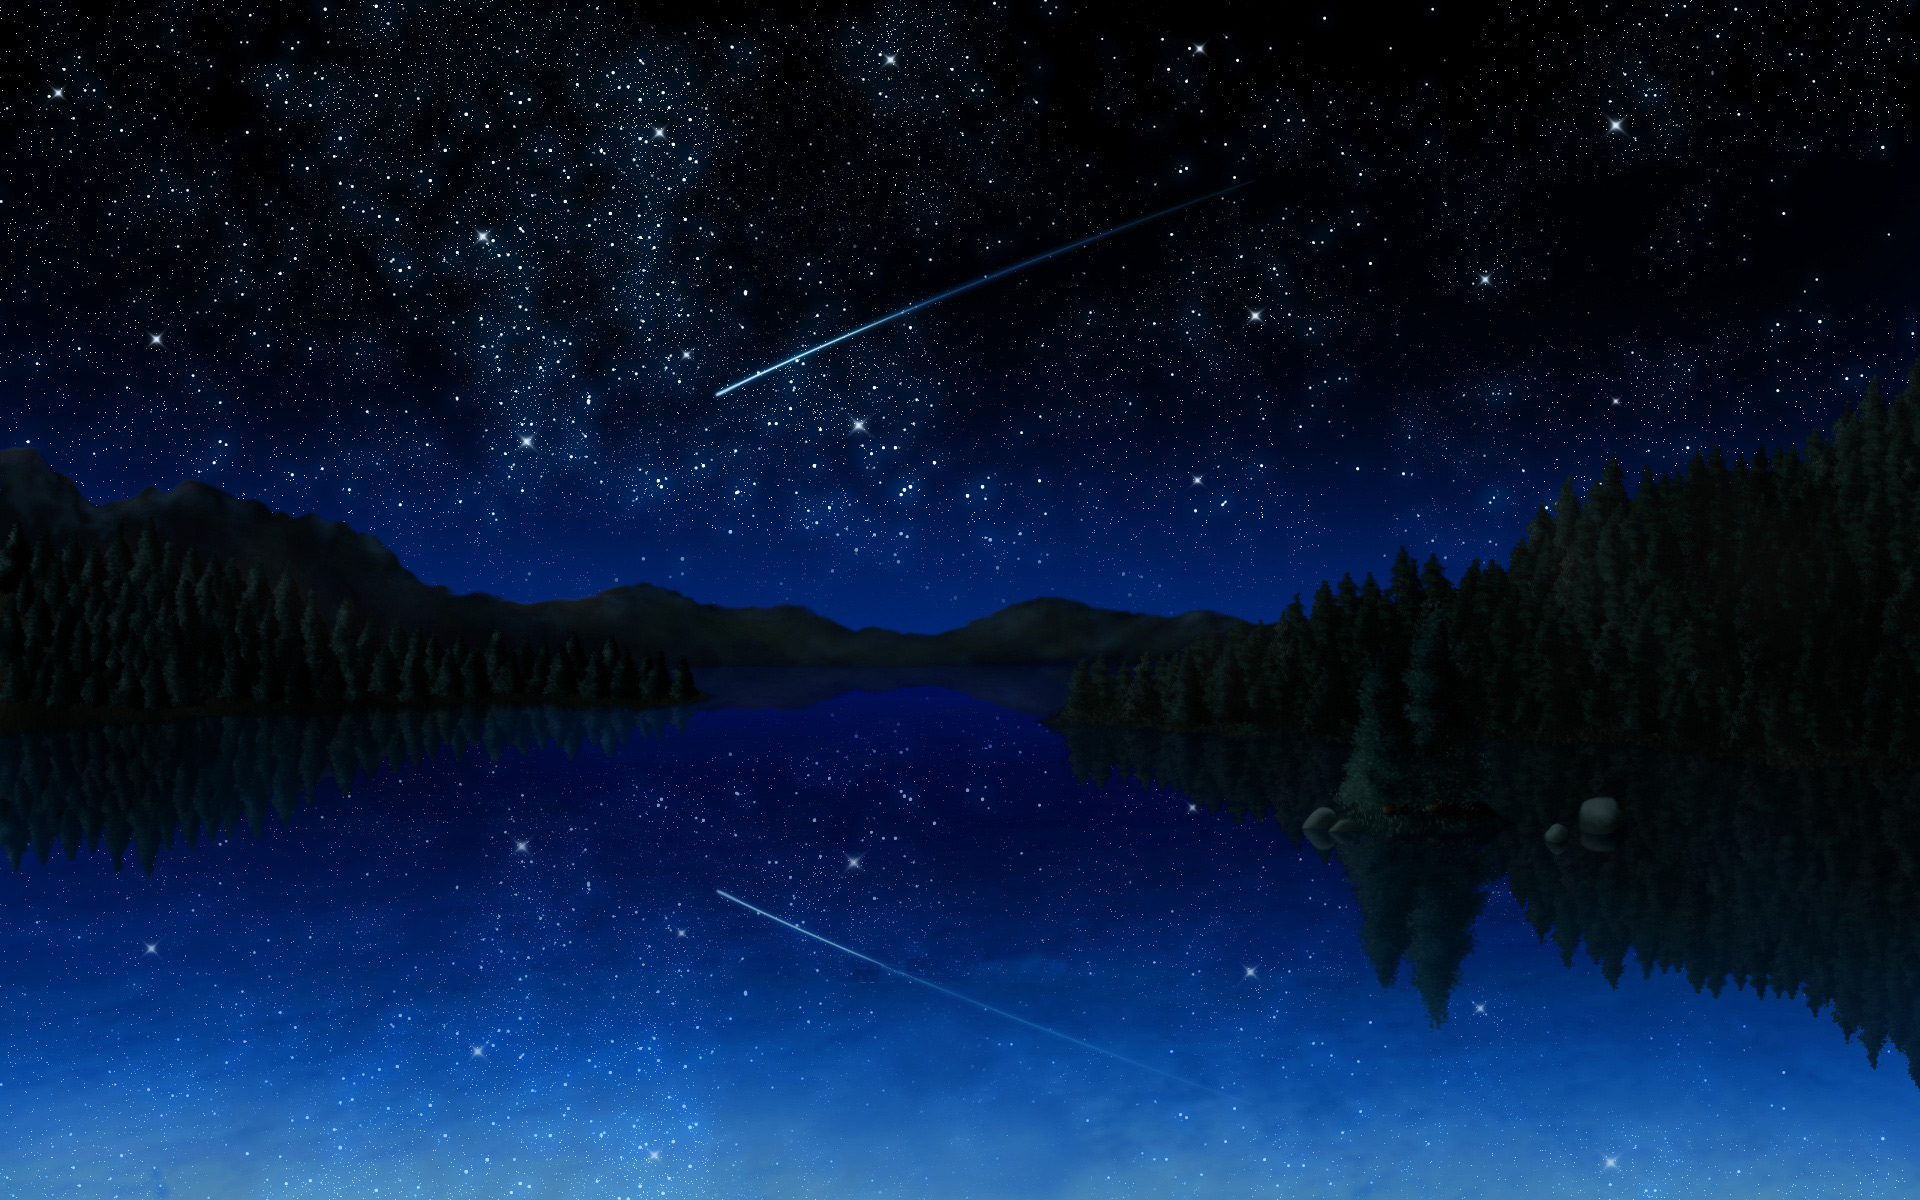 Night Sky Stars Background Psdgraphics - HD 1920×1200